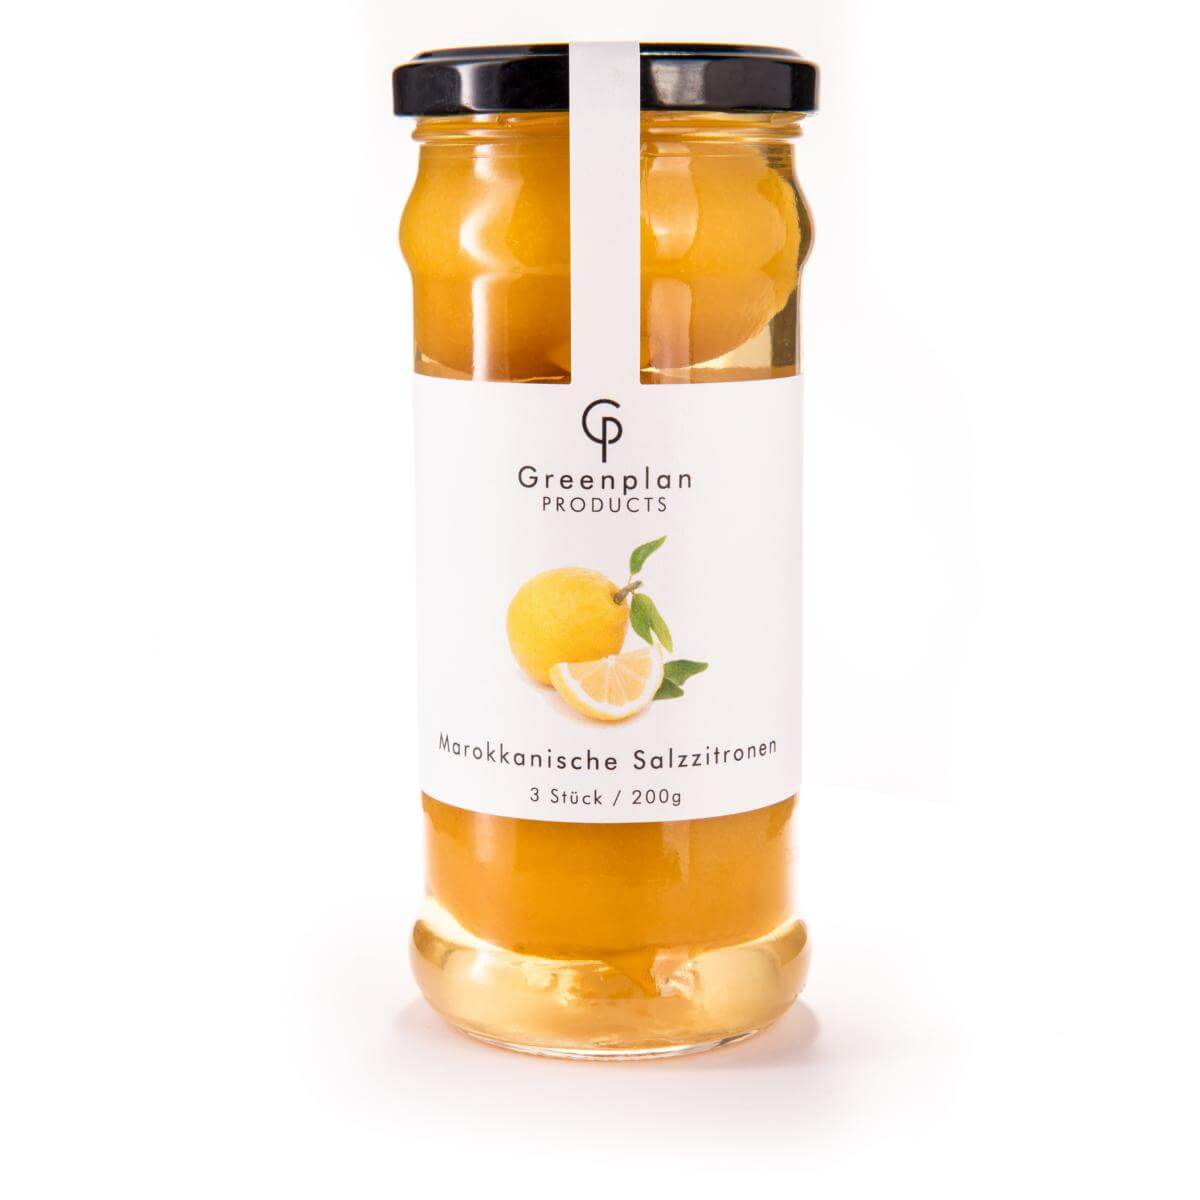 marokkanische salzzitronen citron confit 200 g greenplan products greenplan products. Black Bedroom Furniture Sets. Home Design Ideas